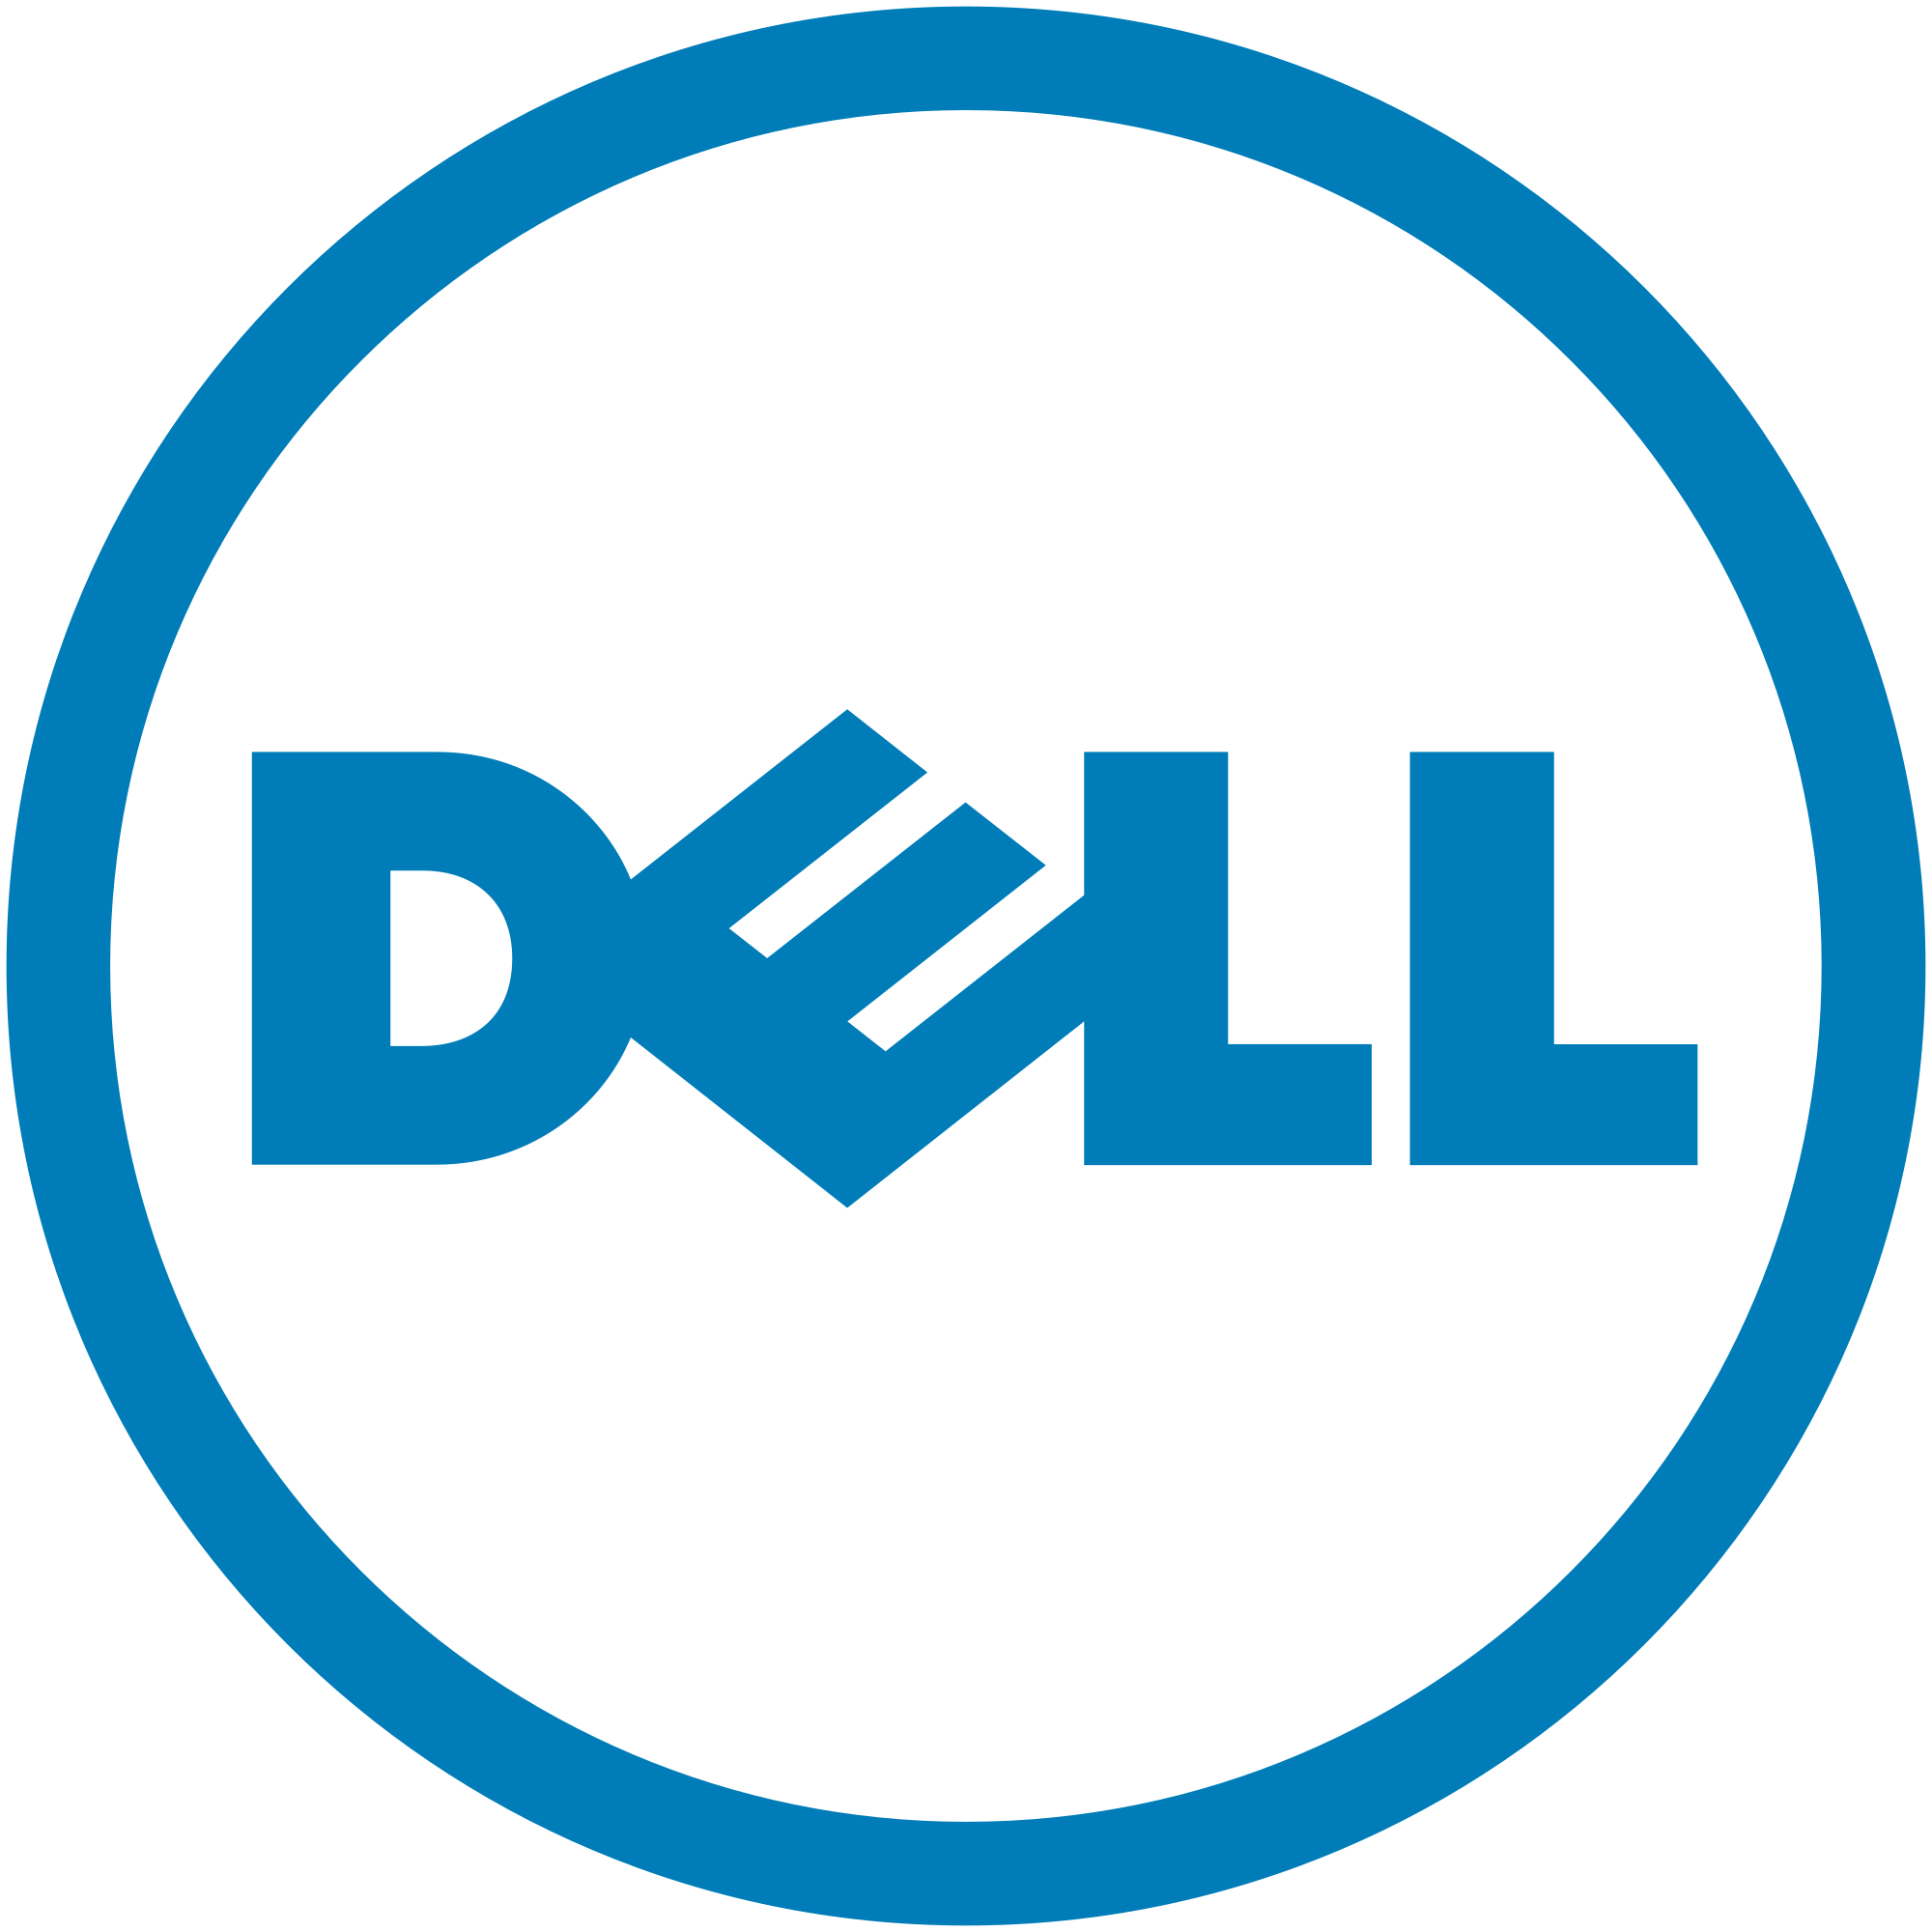 Dell logo png. File wikimedia commons new